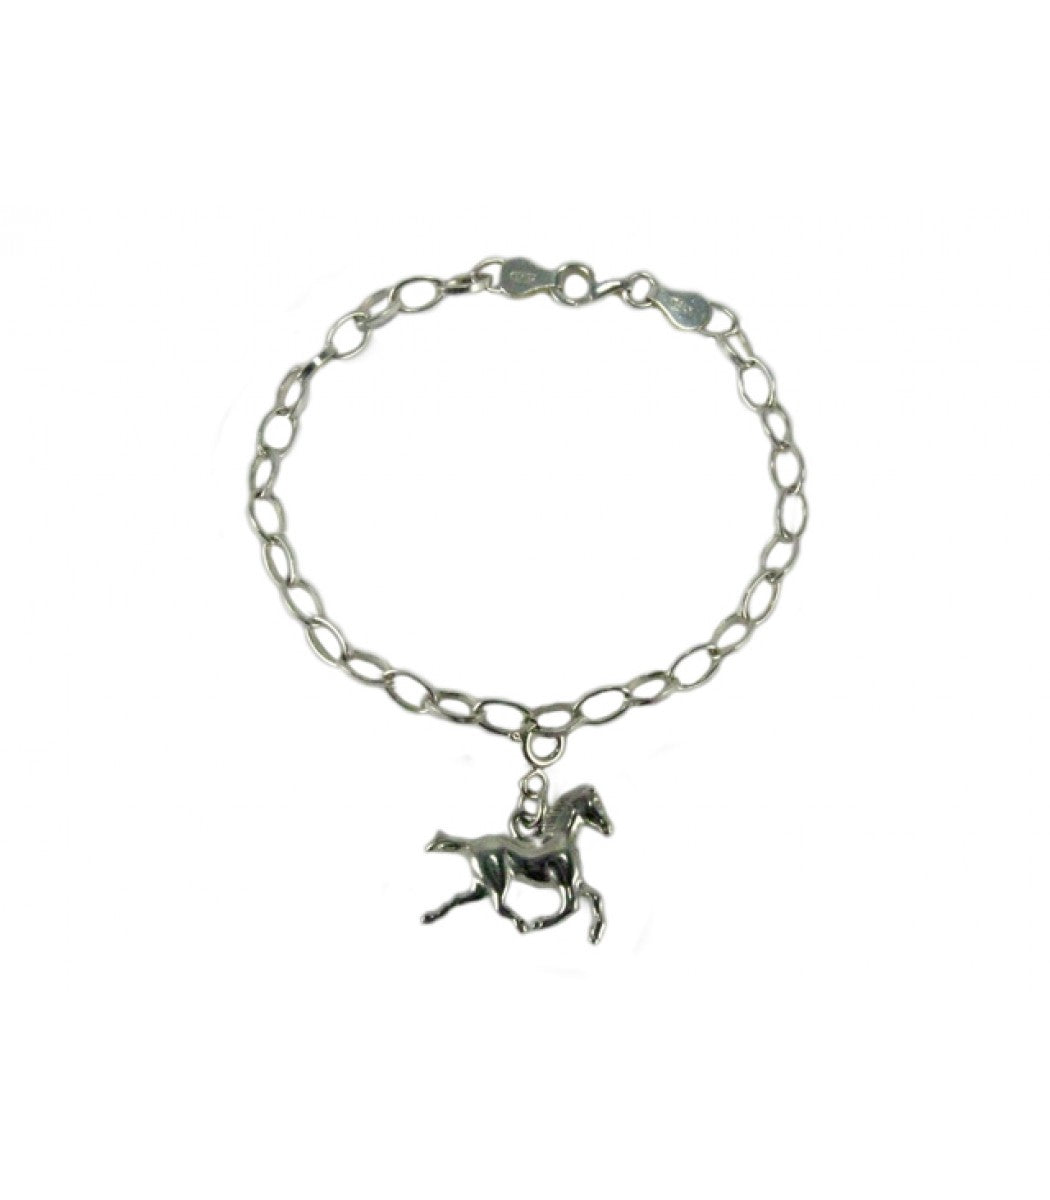 Silver Charm Bracelet with One Charm